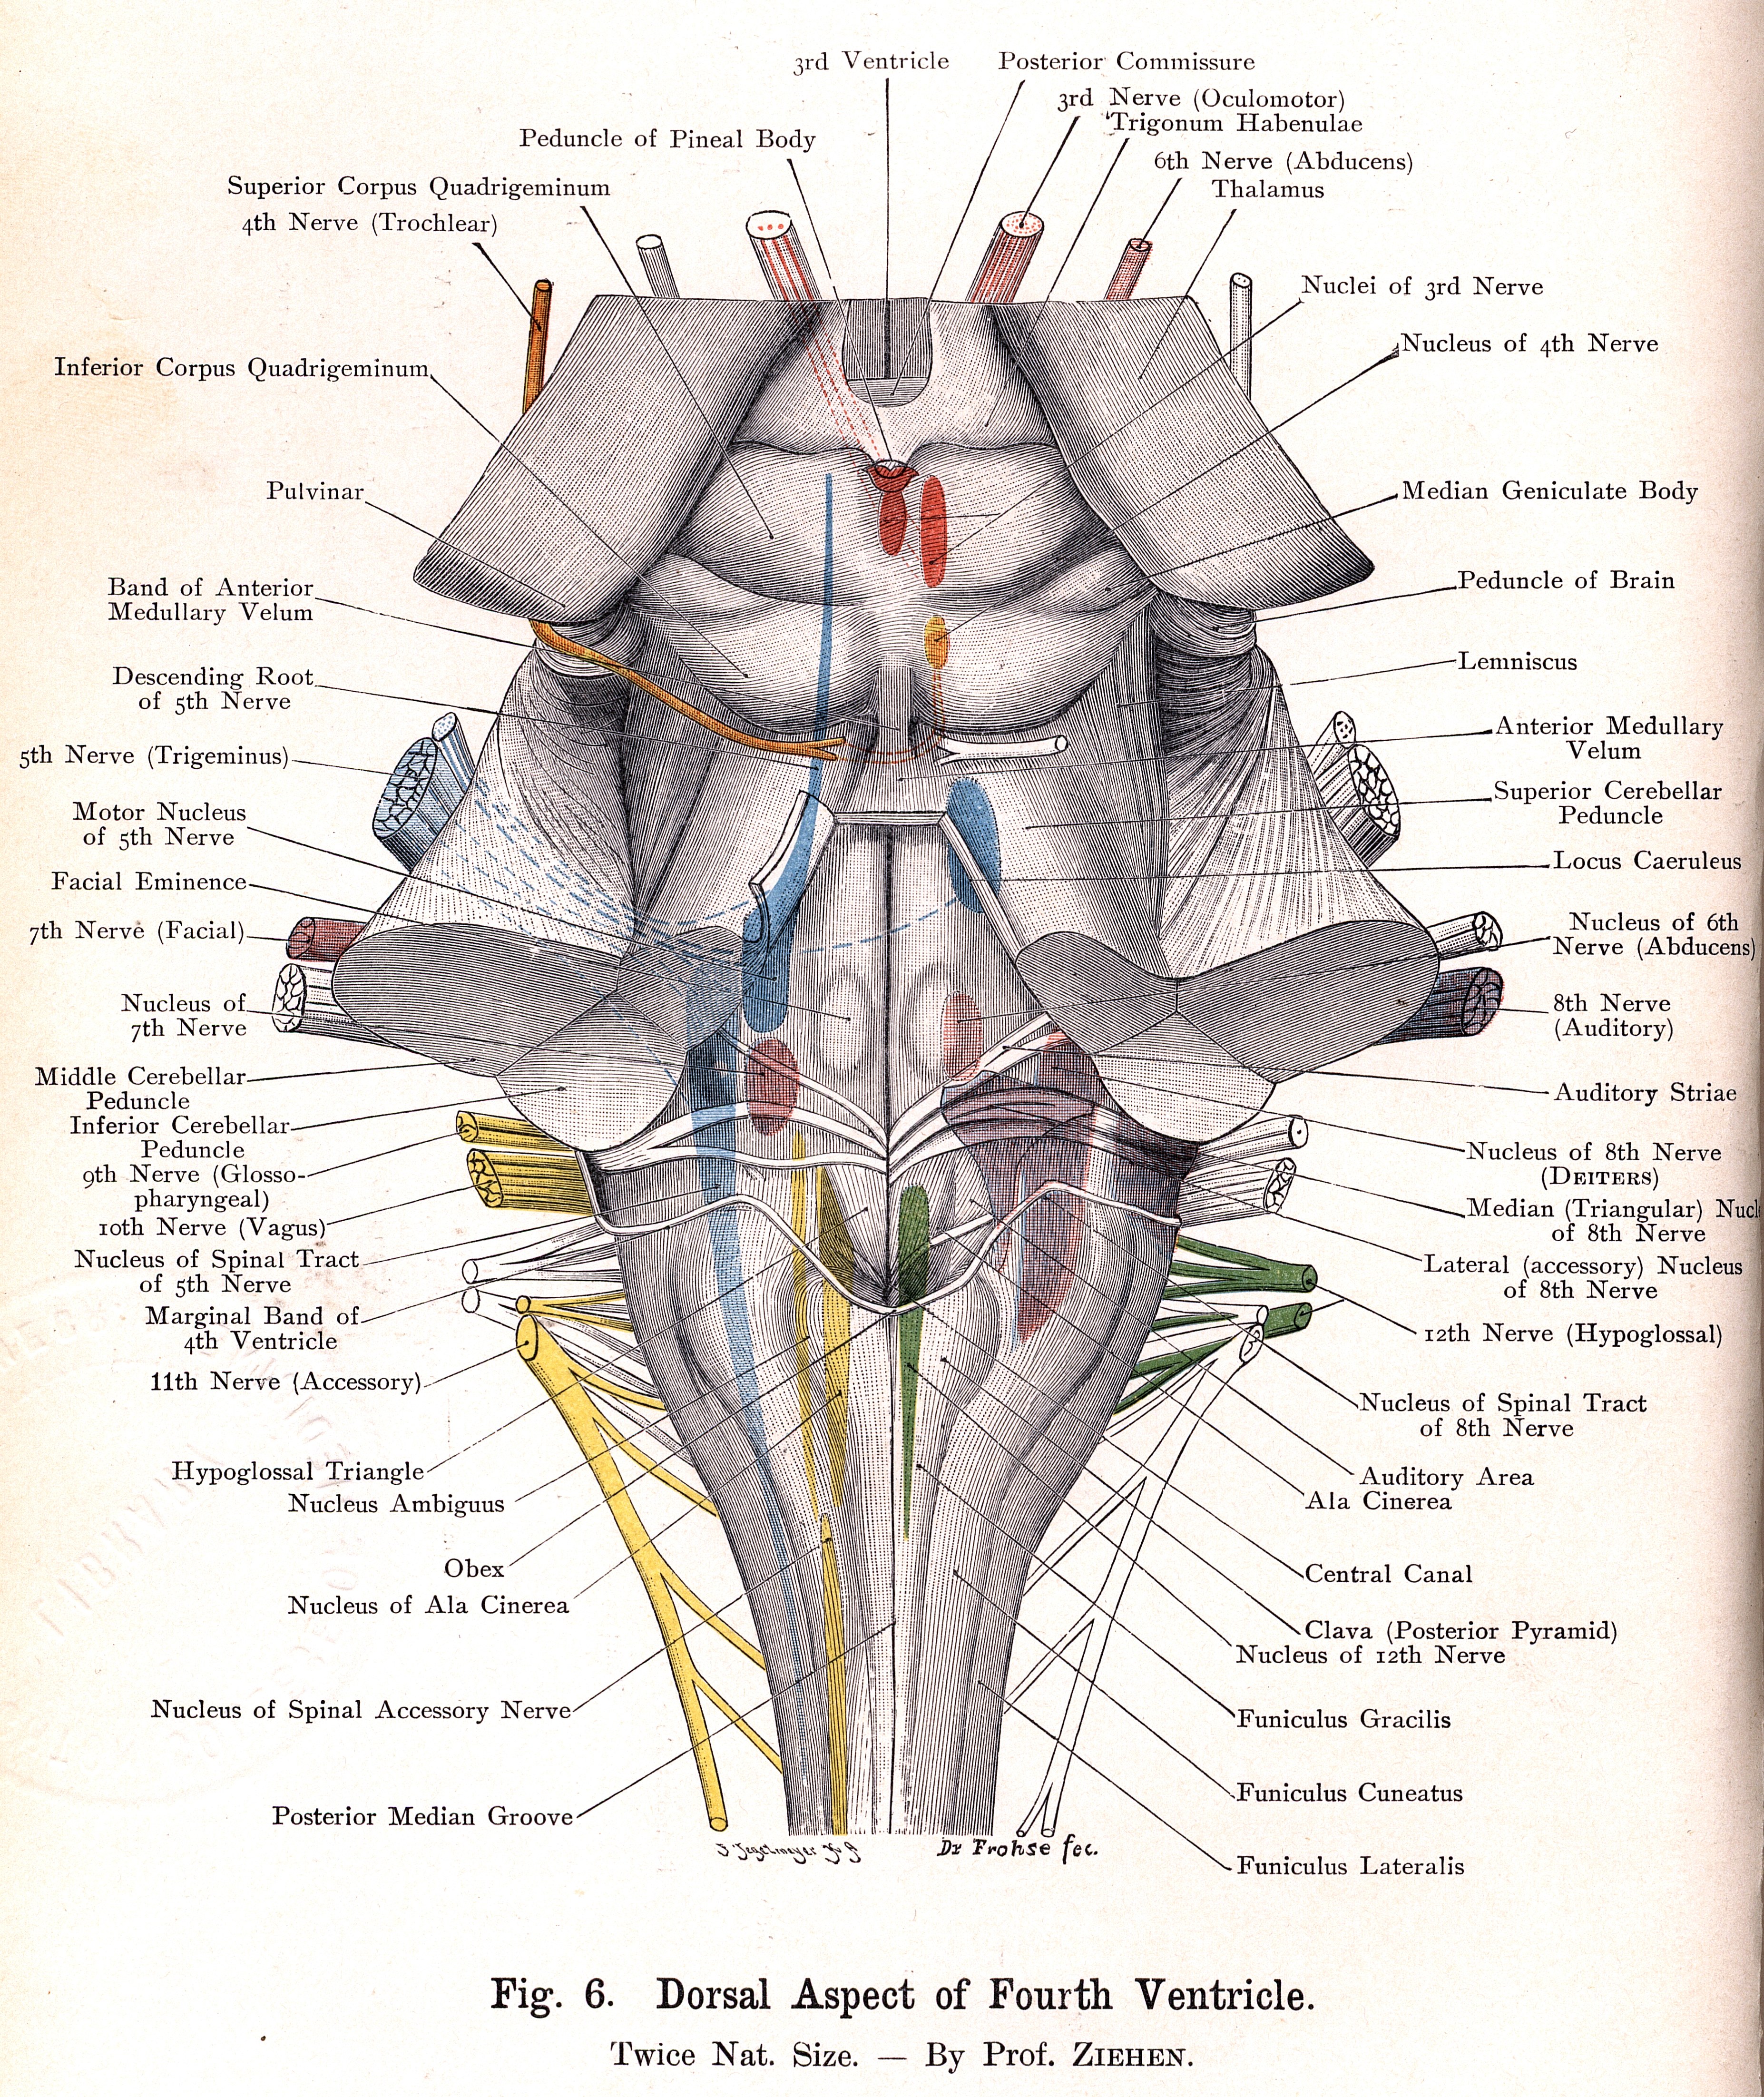 6 Dorsal Aspect Of Fourth Ventricle